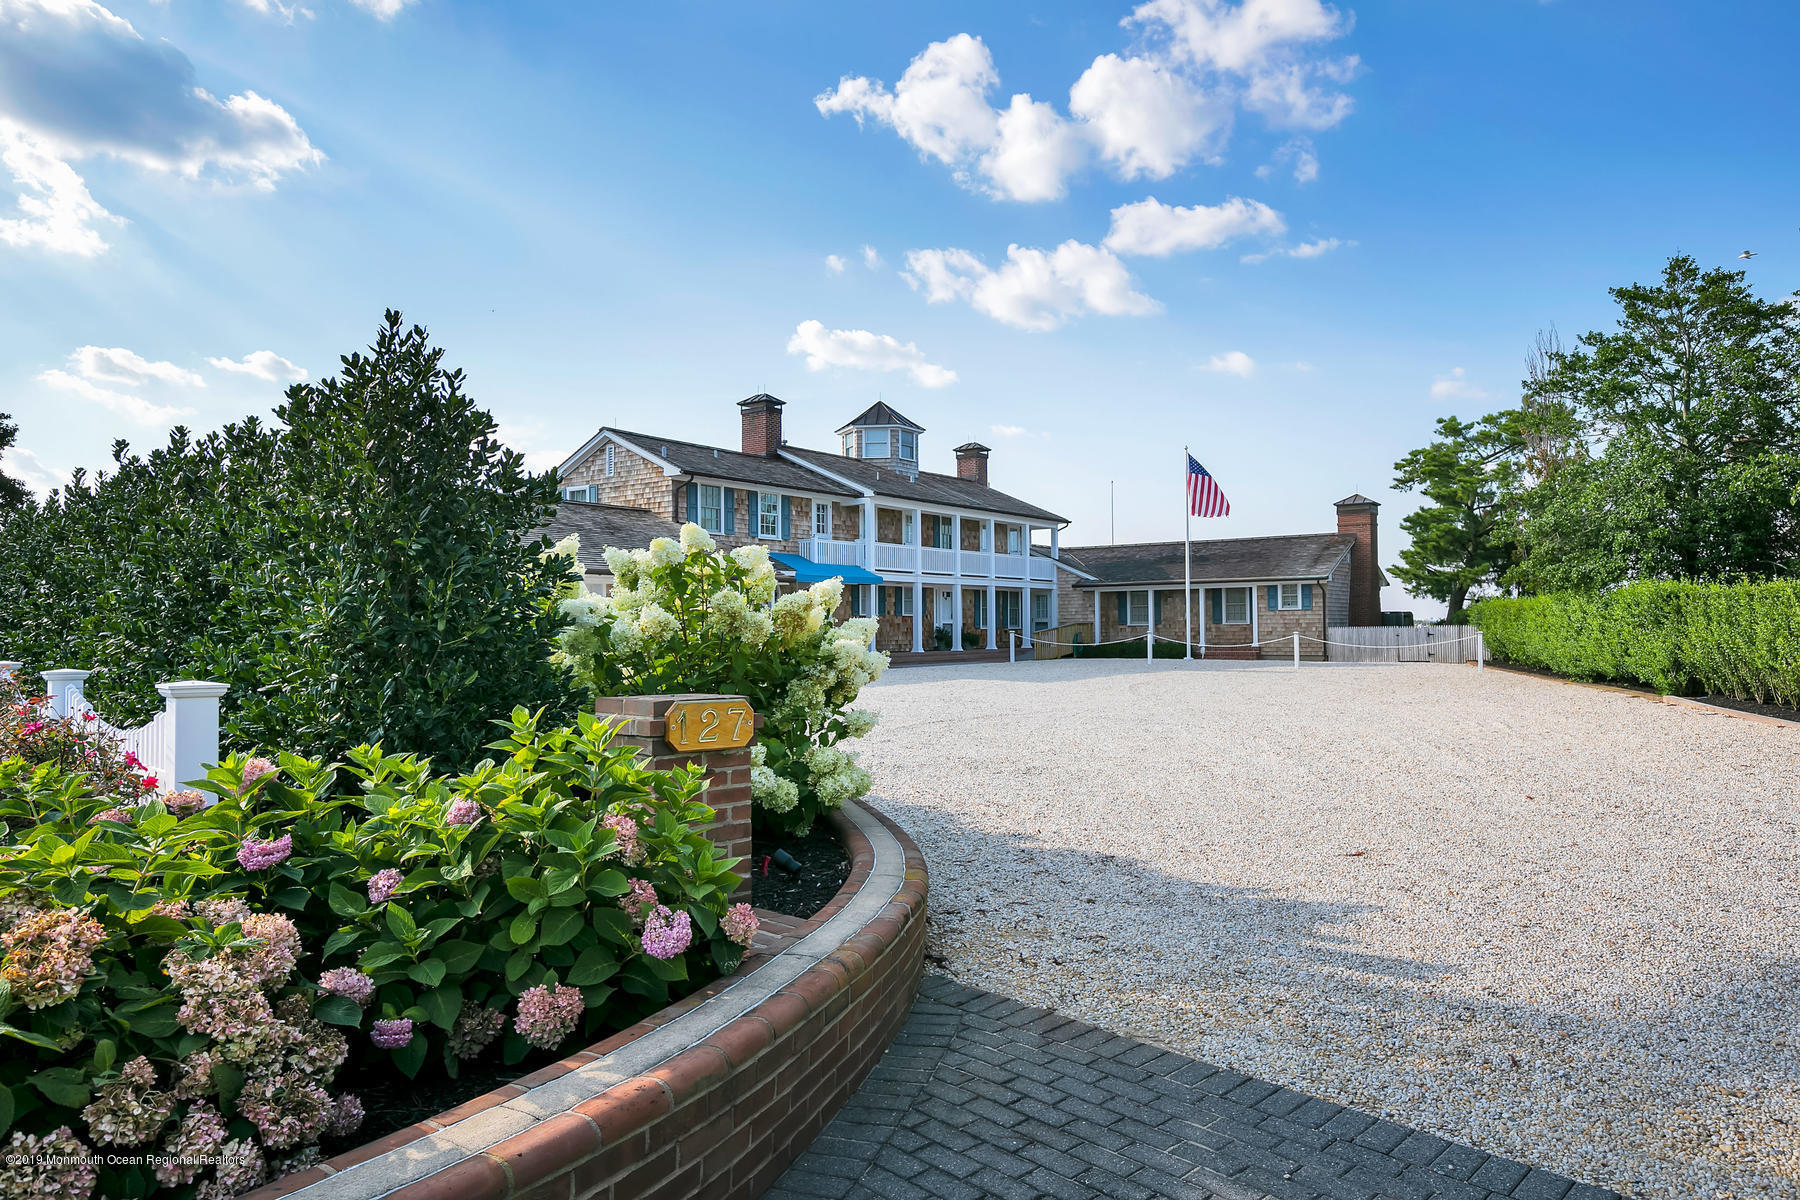 Photo of 127 Curtis Point Drive, Mantoloking, NJ 08738